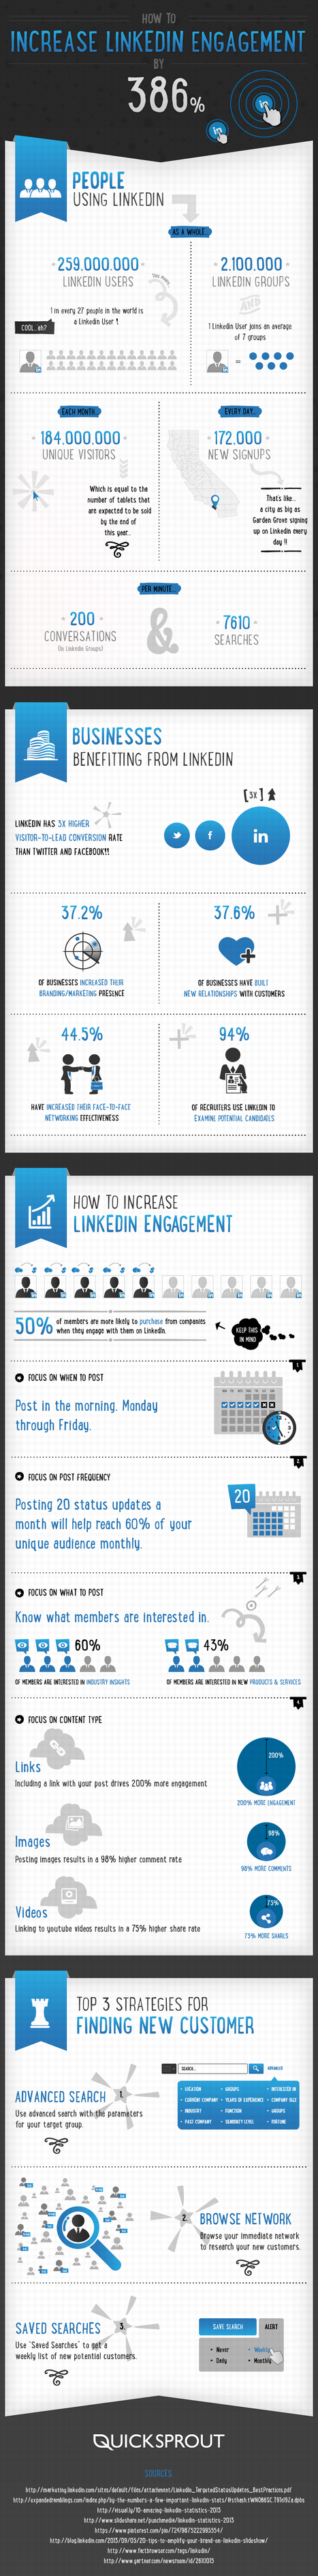 How to Increase LinkedIn Engagement 300 Percent #INFOGRAPHIC | MarketingHits | Scoop.it